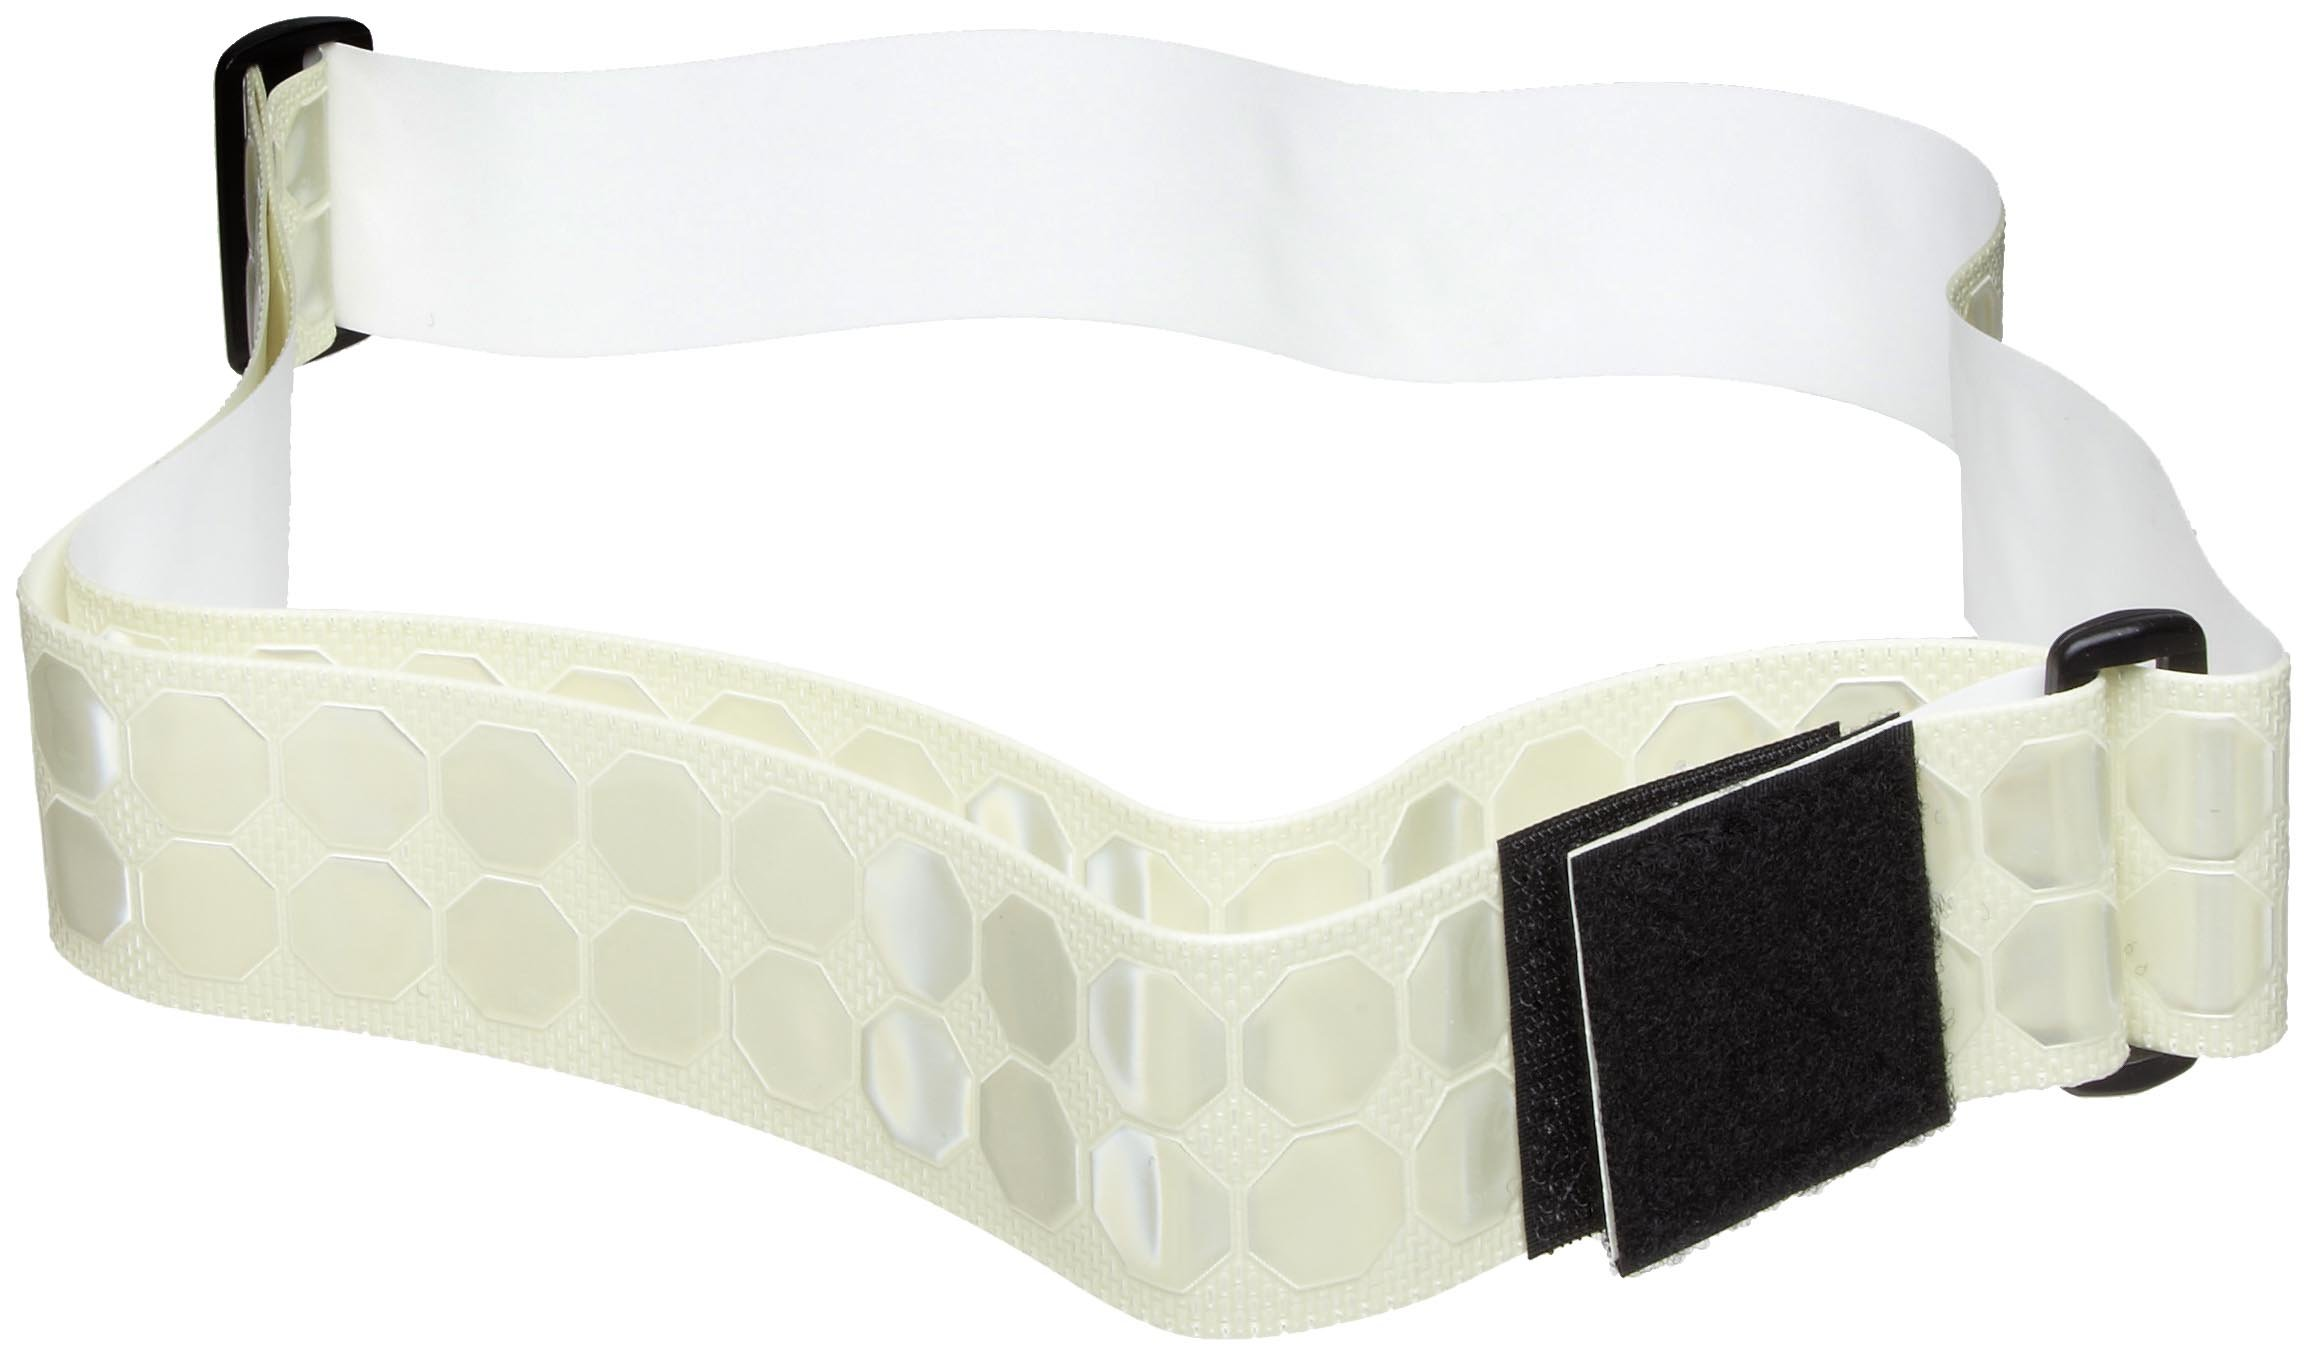 Cyalume Cyflect Photoluminescent Reflective PT Belt, Perfect for Running, Military Issued - 2'' W x 5-1/2' L (White)